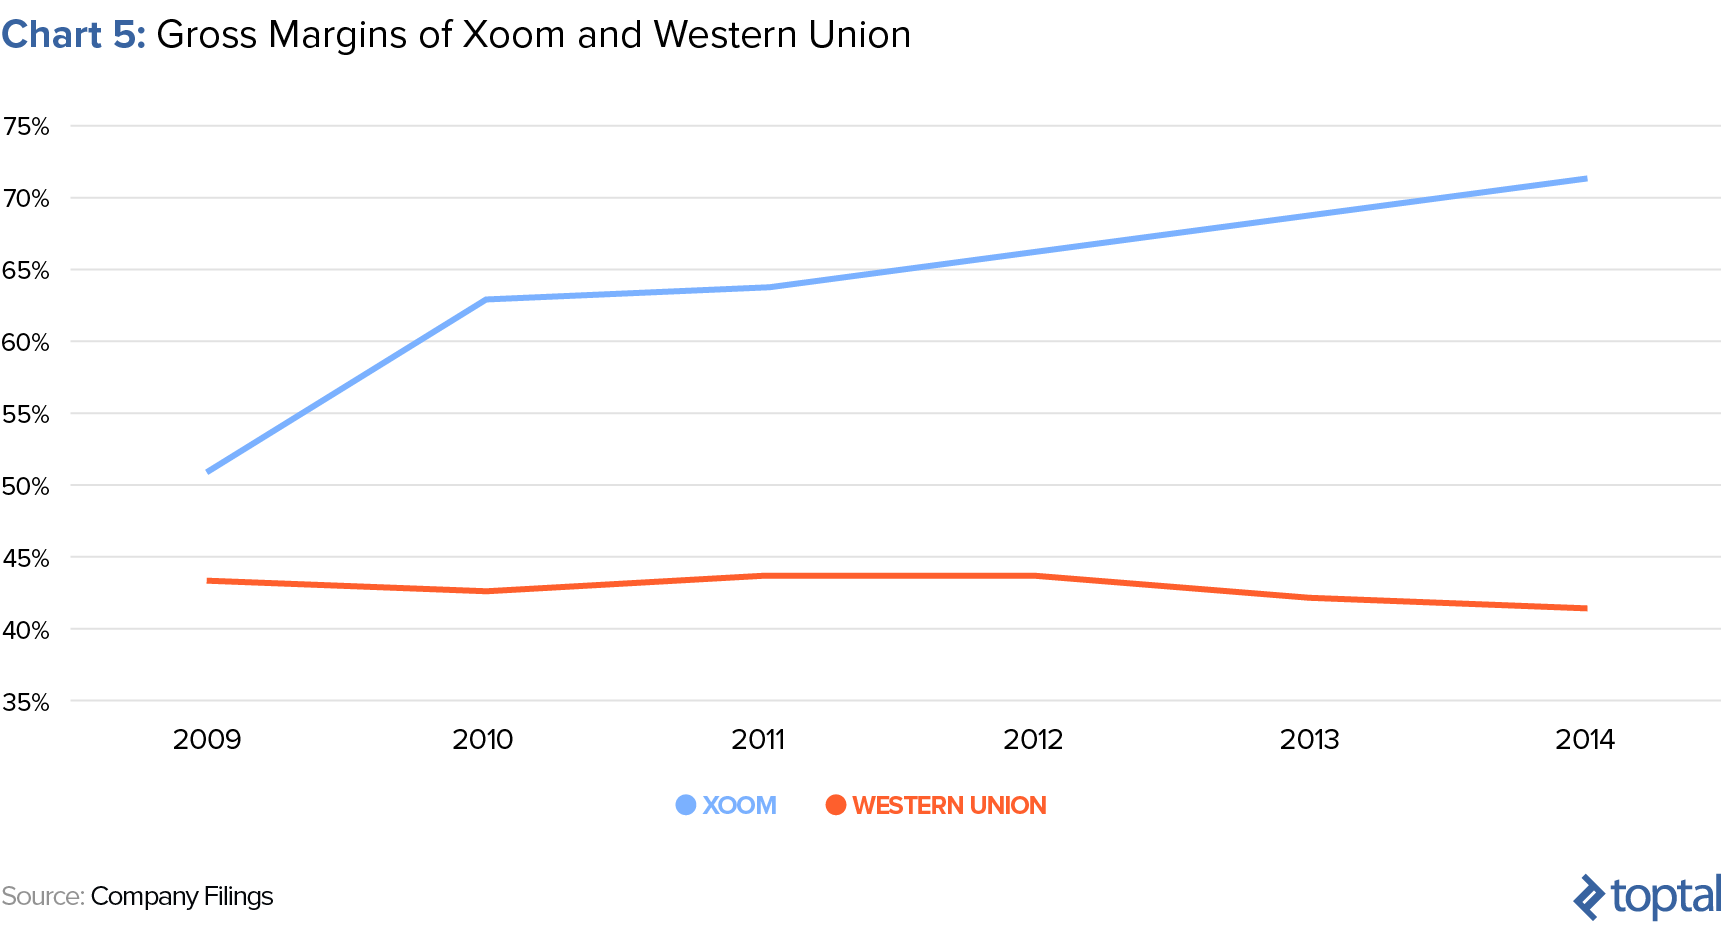 Chart 5: Gross Margins of Xoom and Western Union